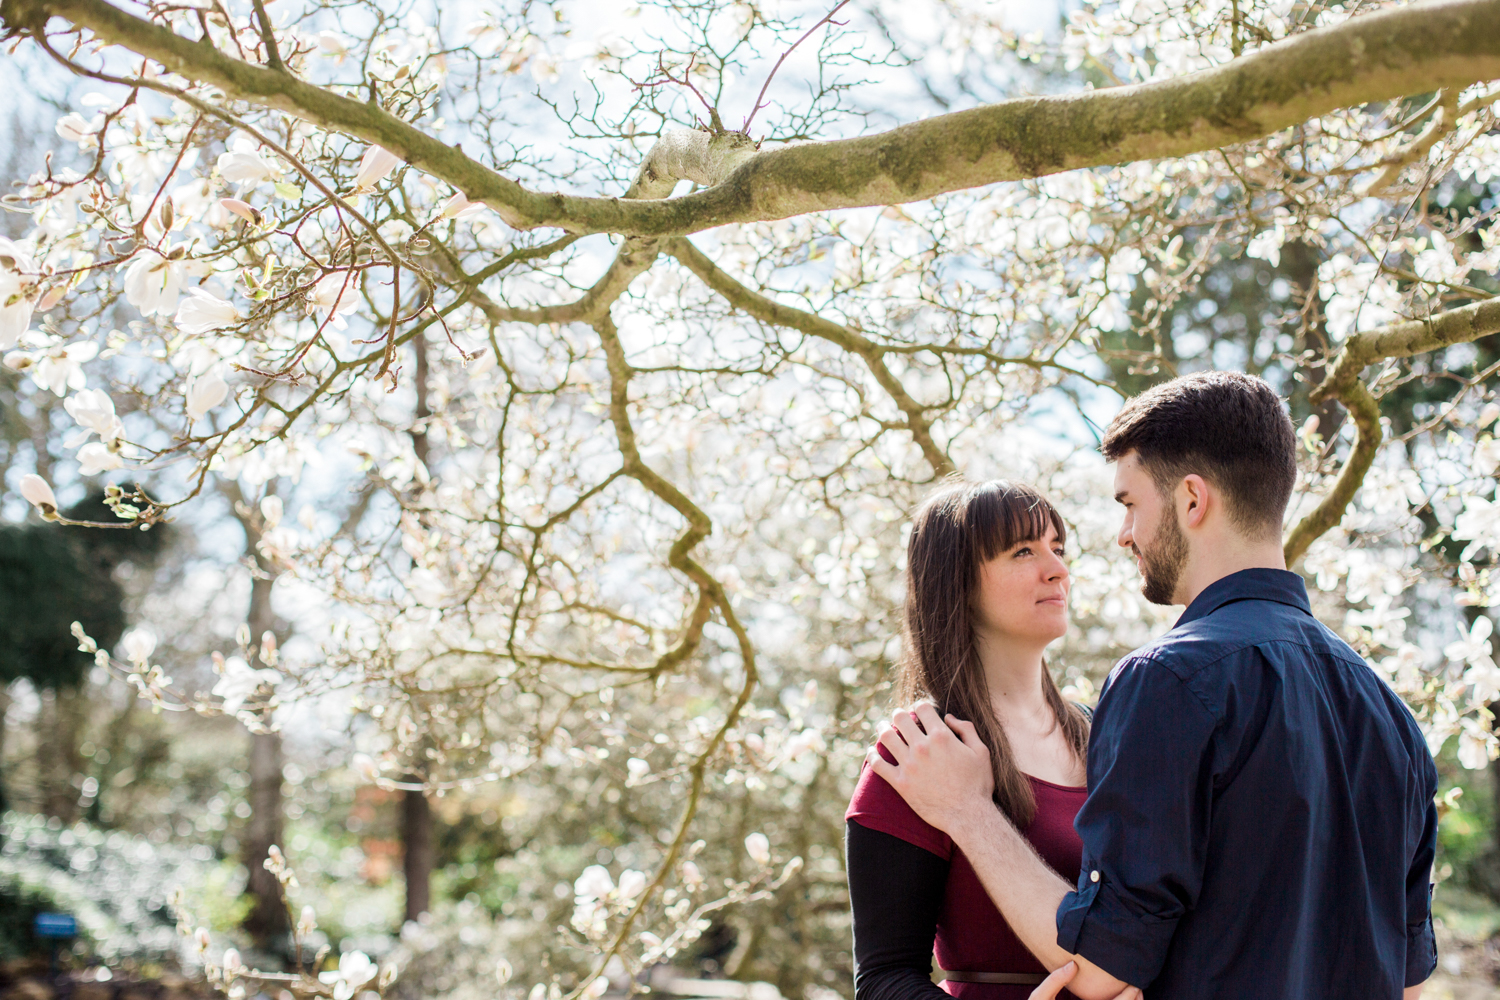 Sophie Evans Photography, Alice & Nathanael Botanical Gardens Engagement Shoot. Warwickshire Wedding Photographer (18).jpg